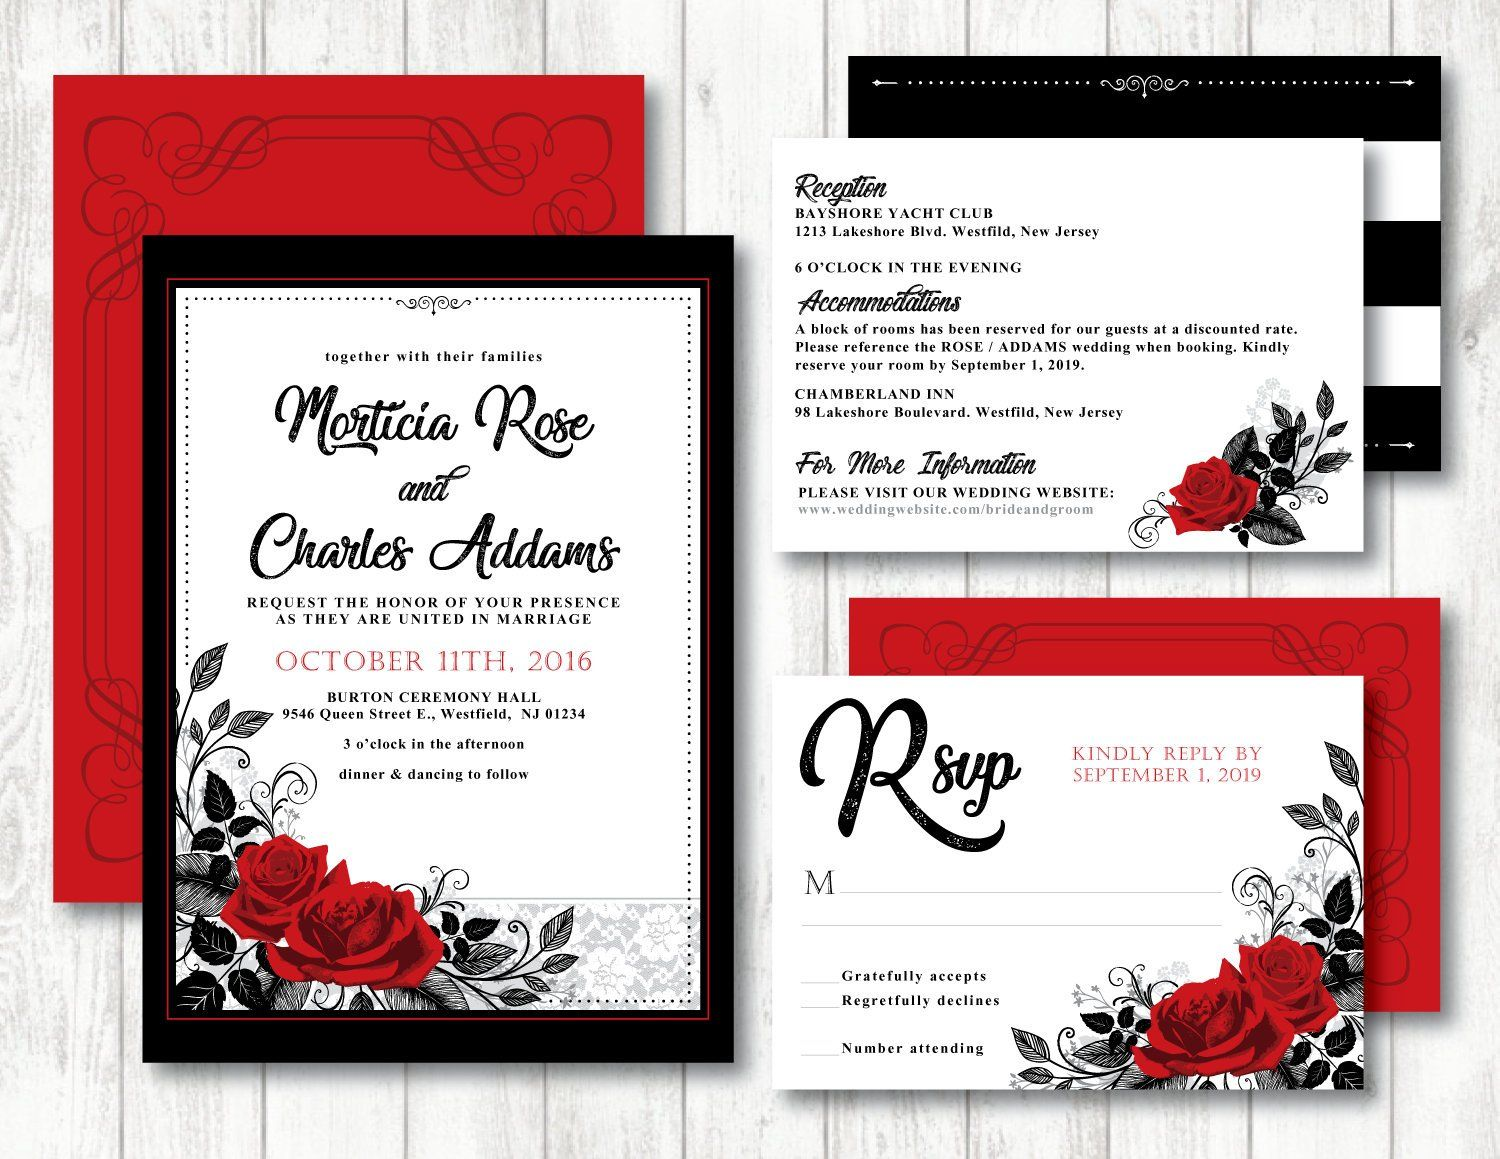 Red Roses Intertwined Theme Printable Wedding Invitation Red Rose Invitation Gothic Wedding Black Red Save The Date Custom Printable Wedding Invitations Wedding Invitations Red Rose Invitation